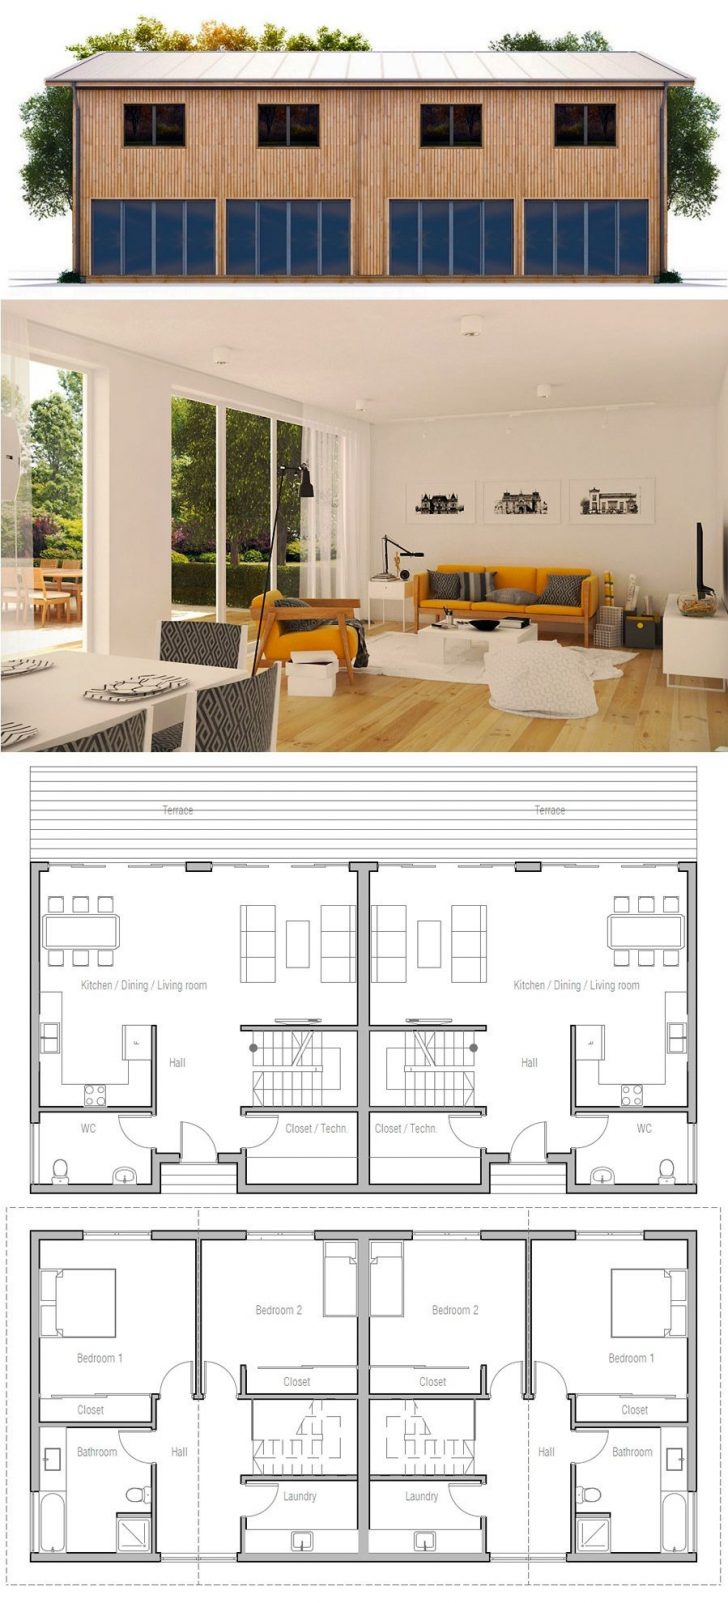 House Plans with Interior Photos 2021